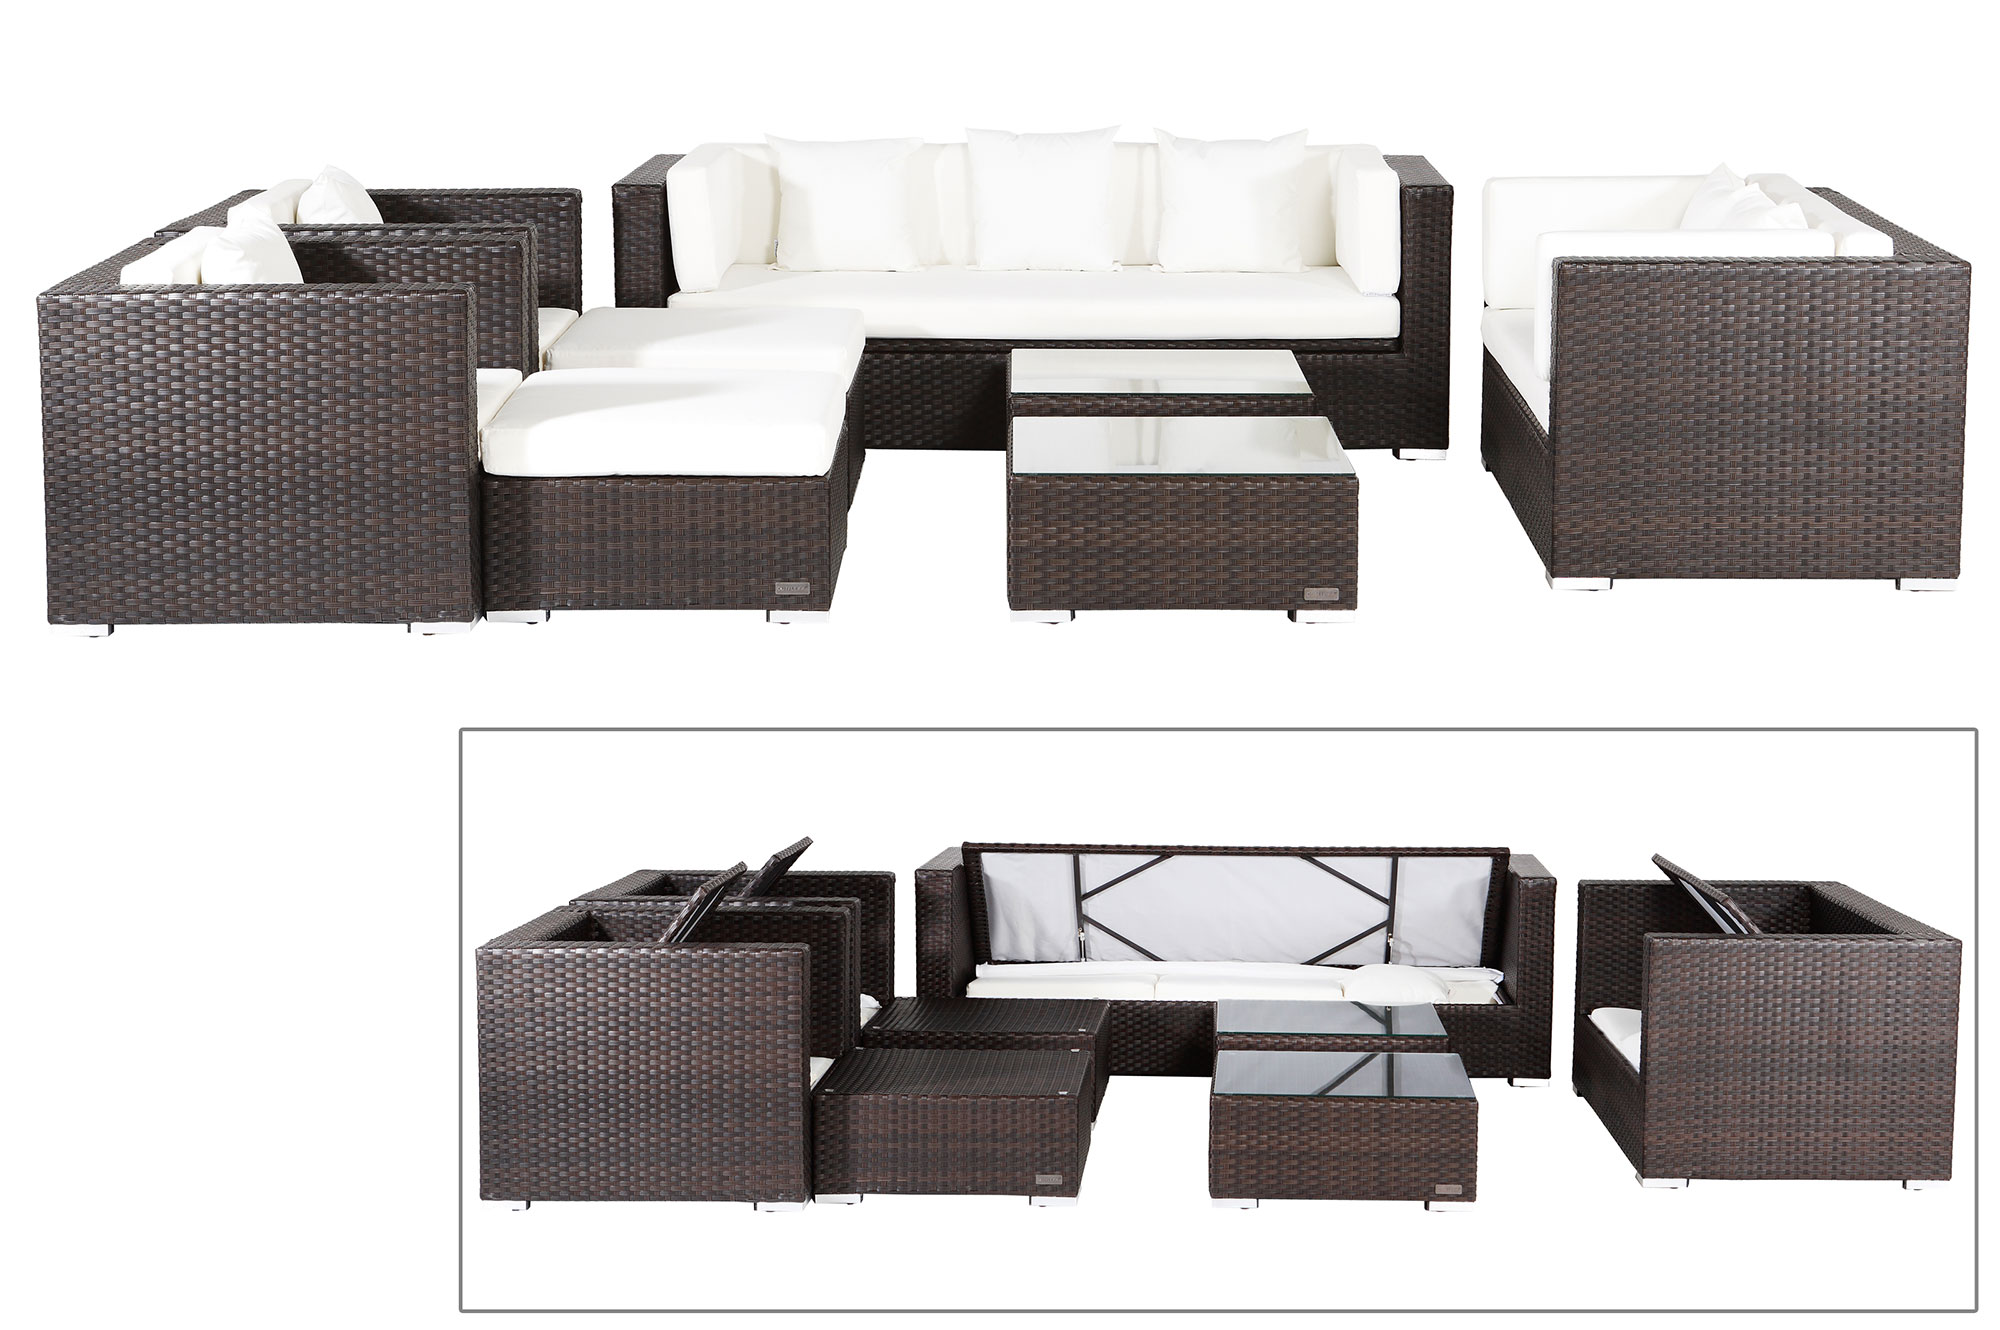 outflexx sitzgruppe aus polyrattan mit kissenboxfunktion inkl polster f r 9 pers braun. Black Bedroom Furniture Sets. Home Design Ideas